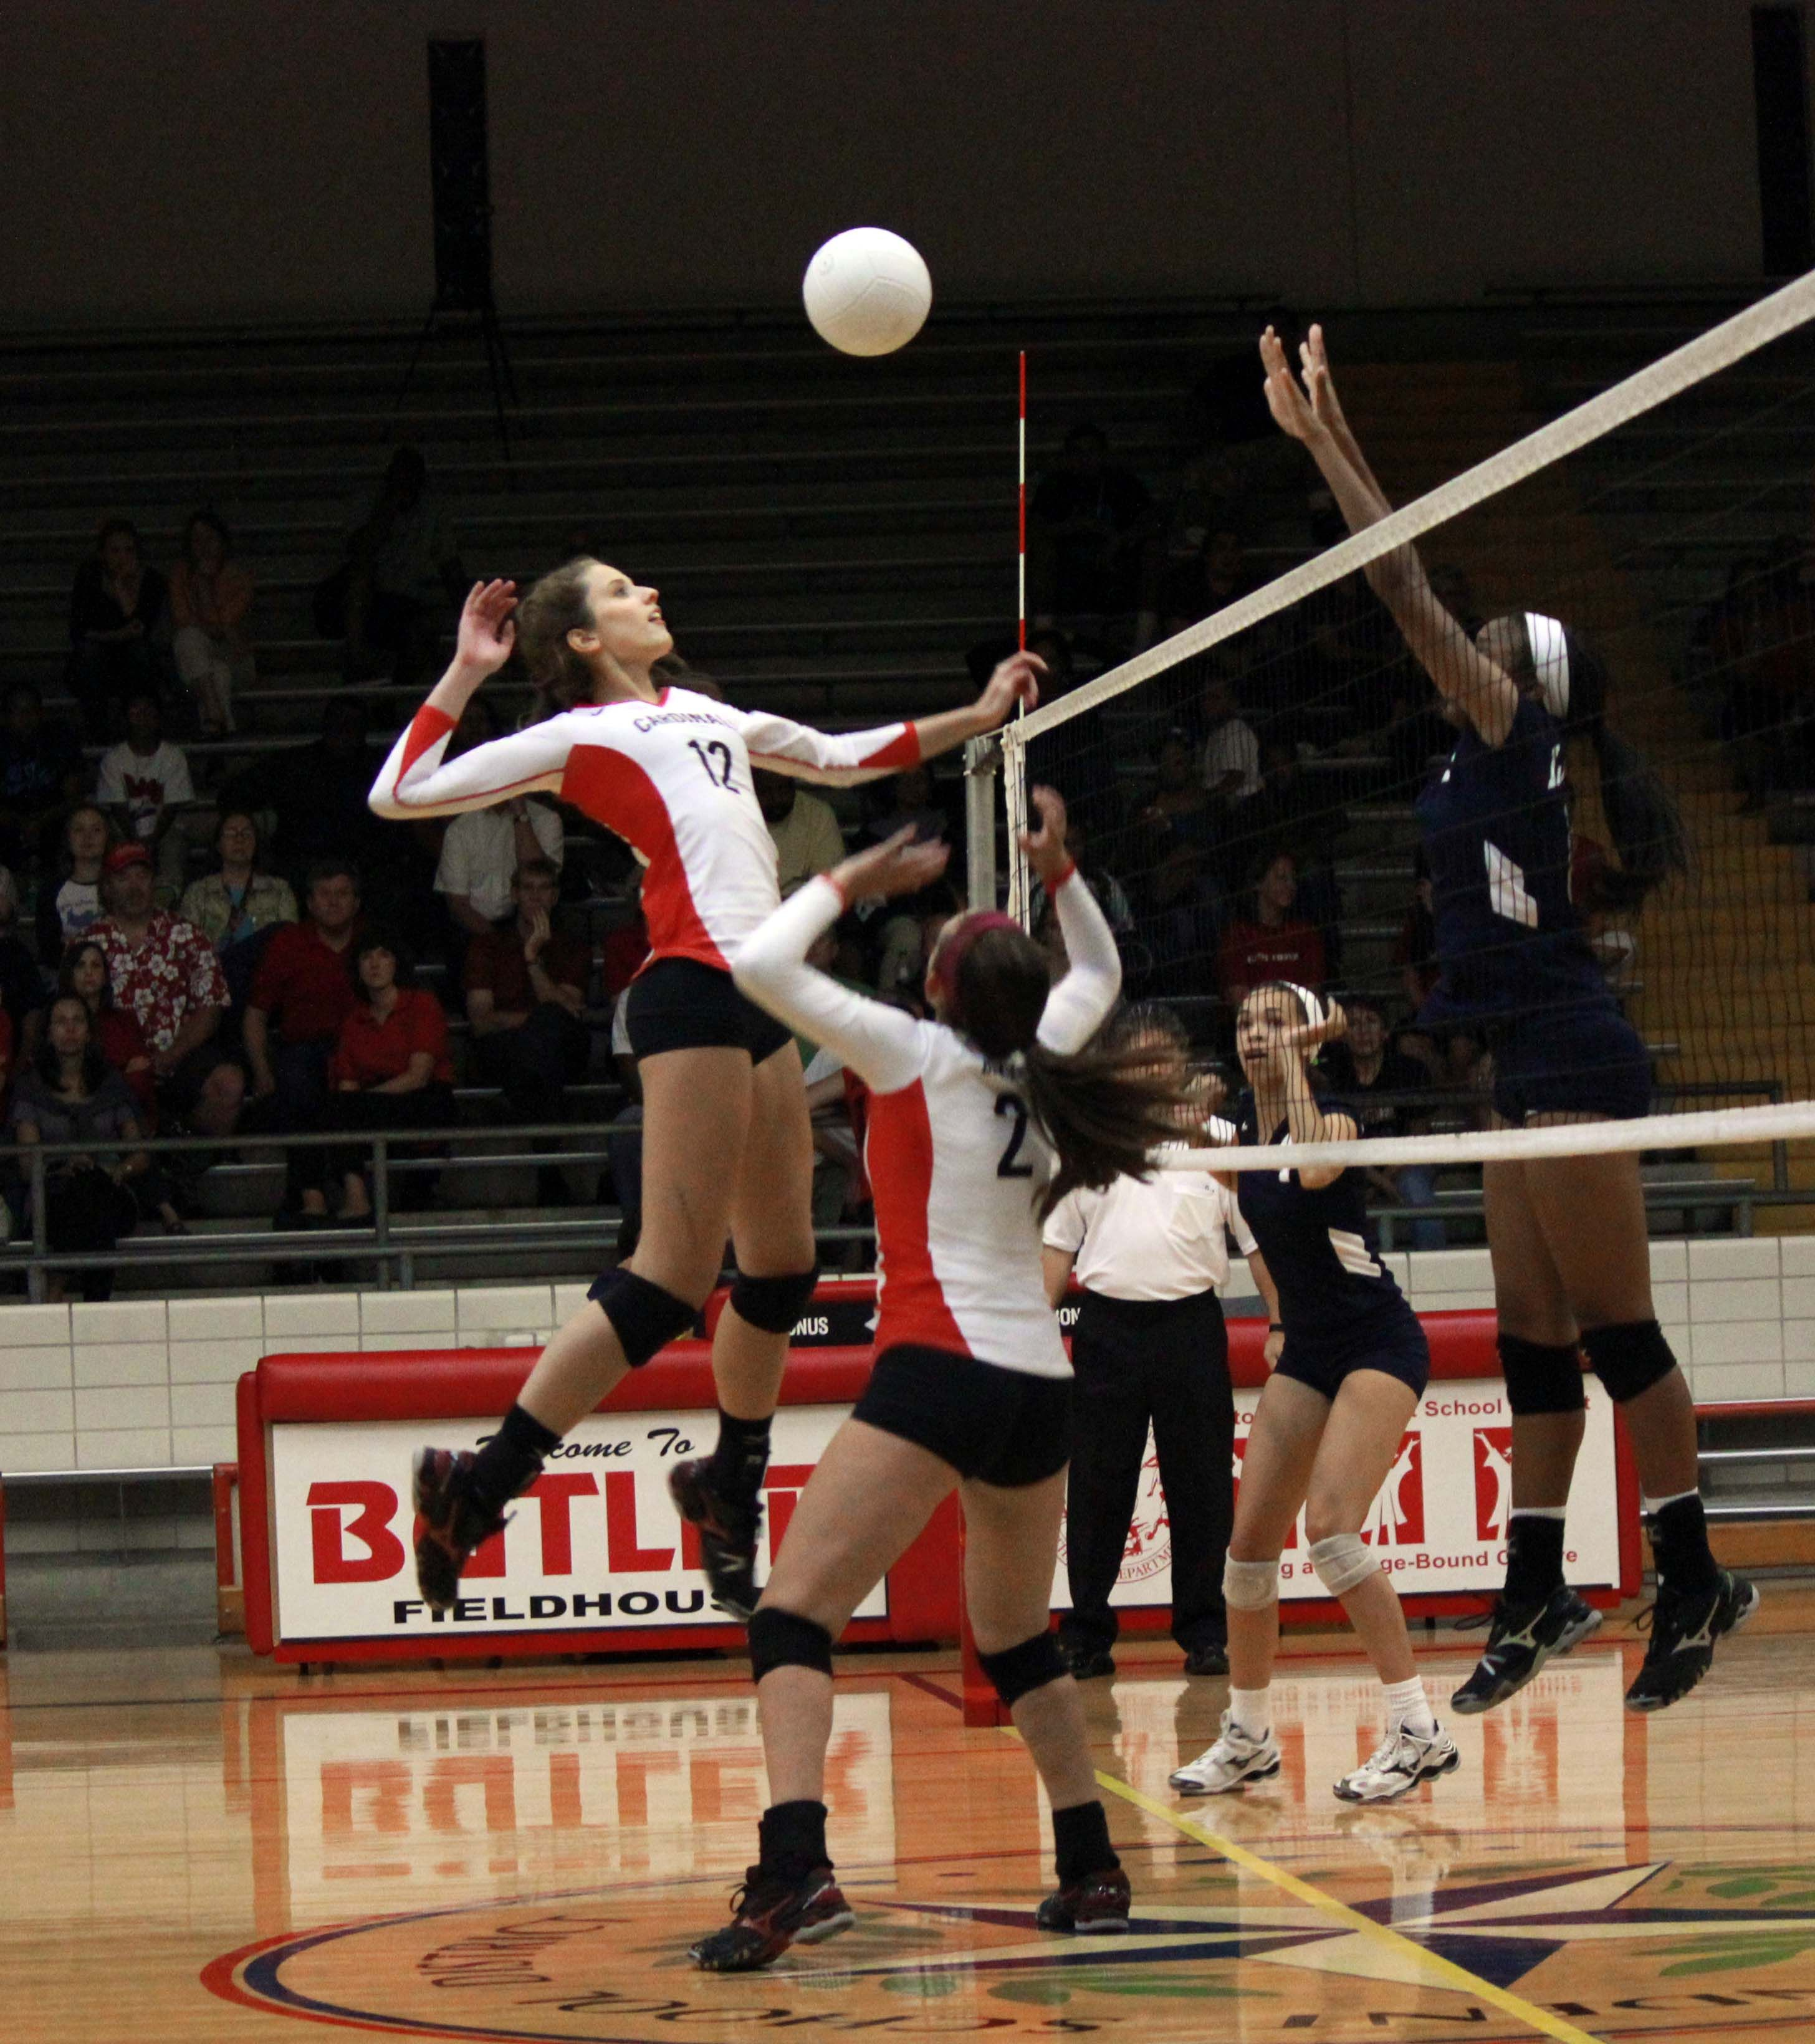 Sports, Volleyball, Stop action, Rule of Thirds. Bellaire